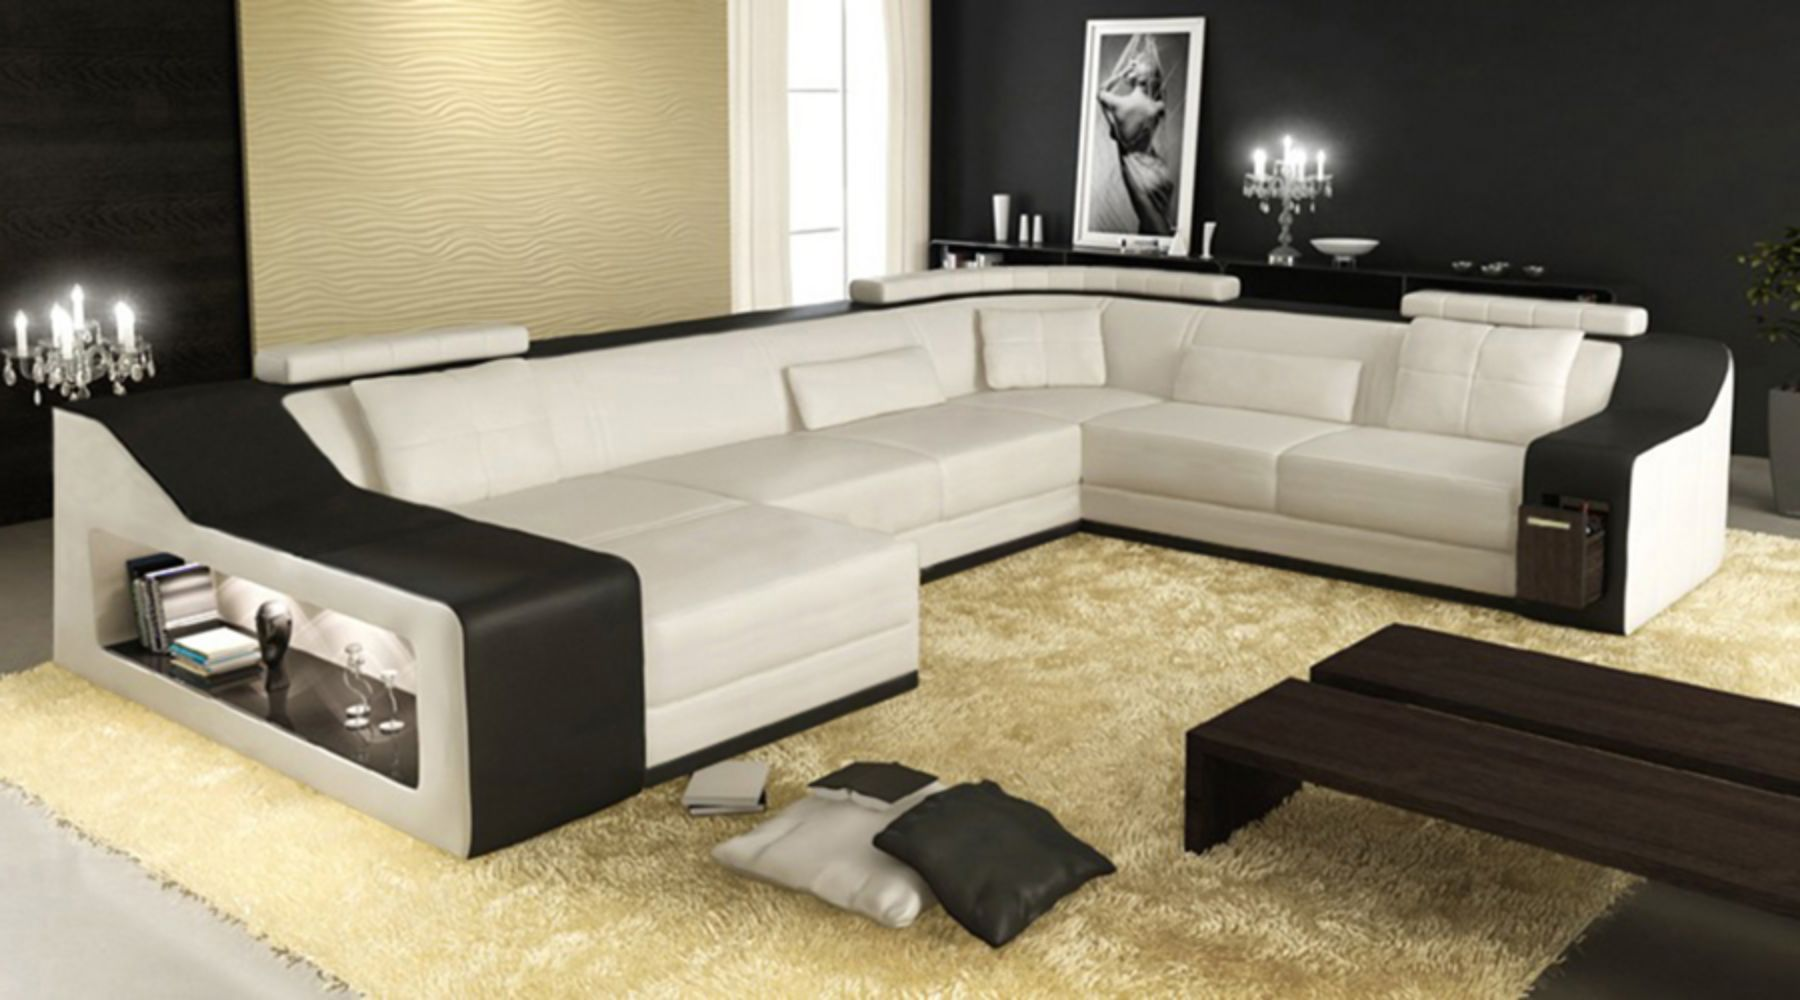 Modern Sofa For Living Room 4